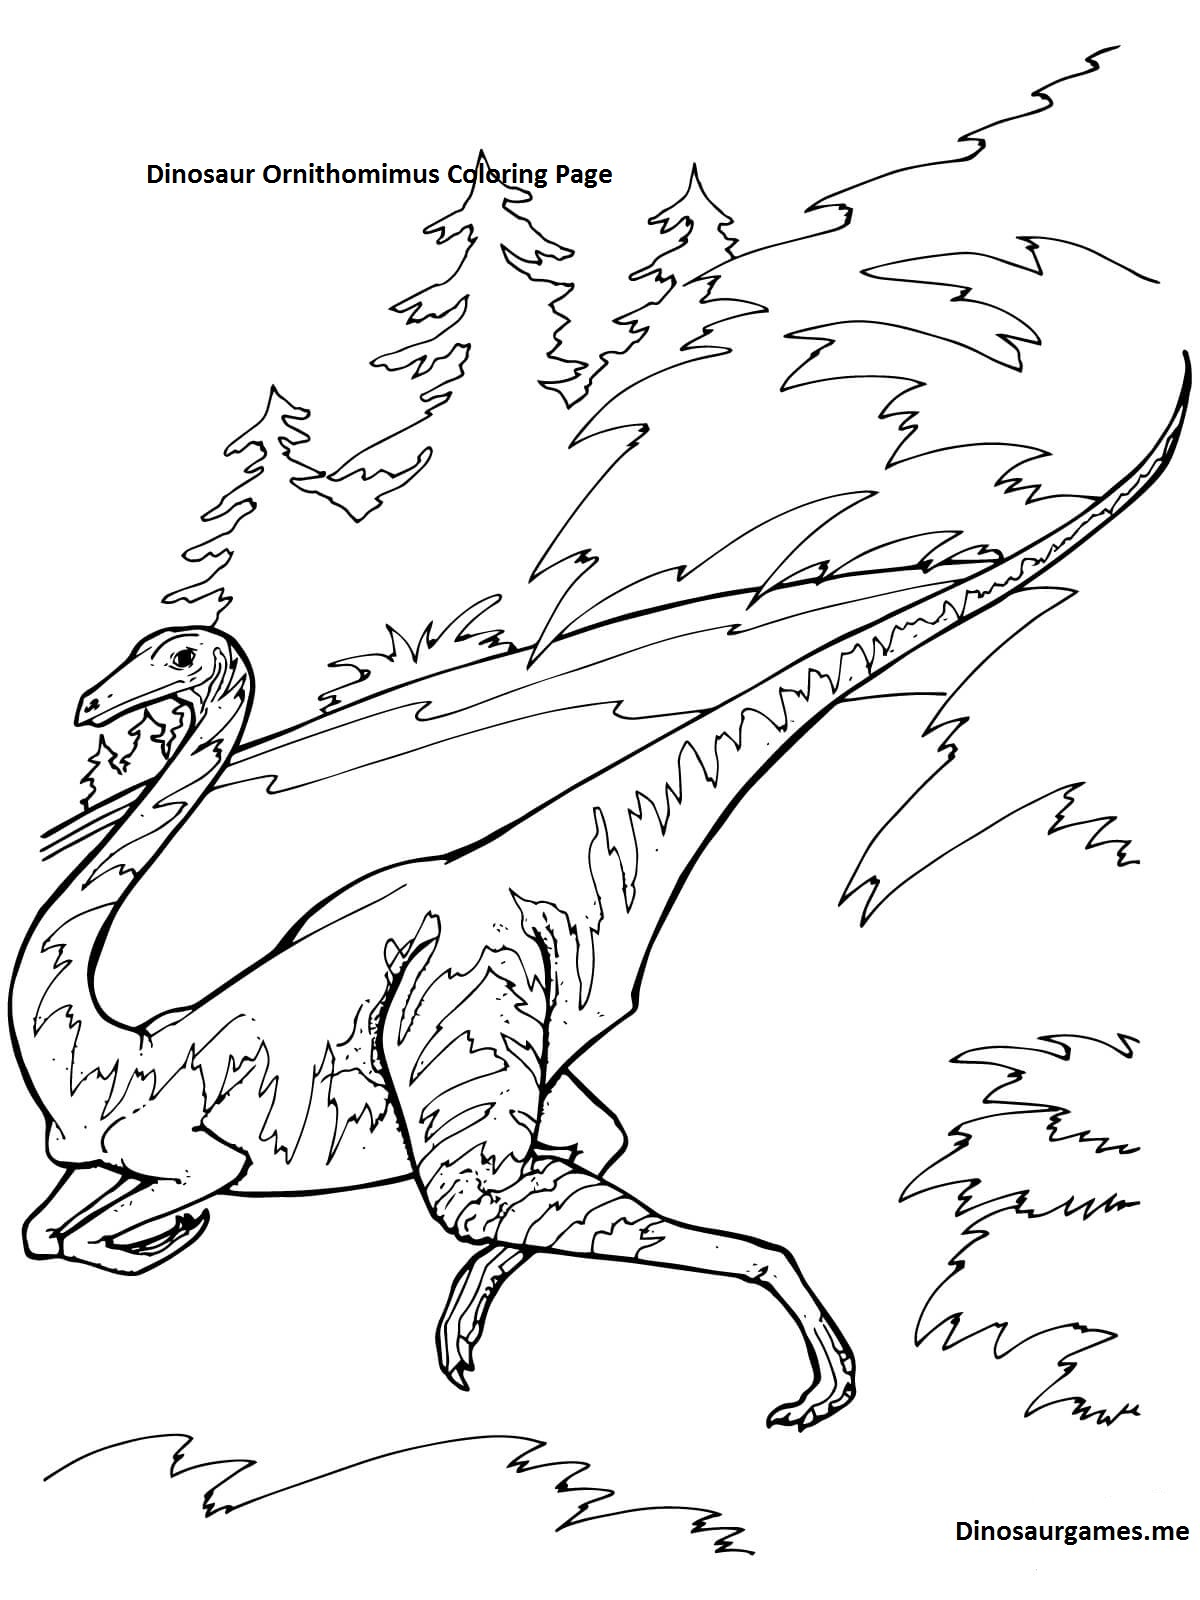 Dinosaur Ornithomimus Coloring Page